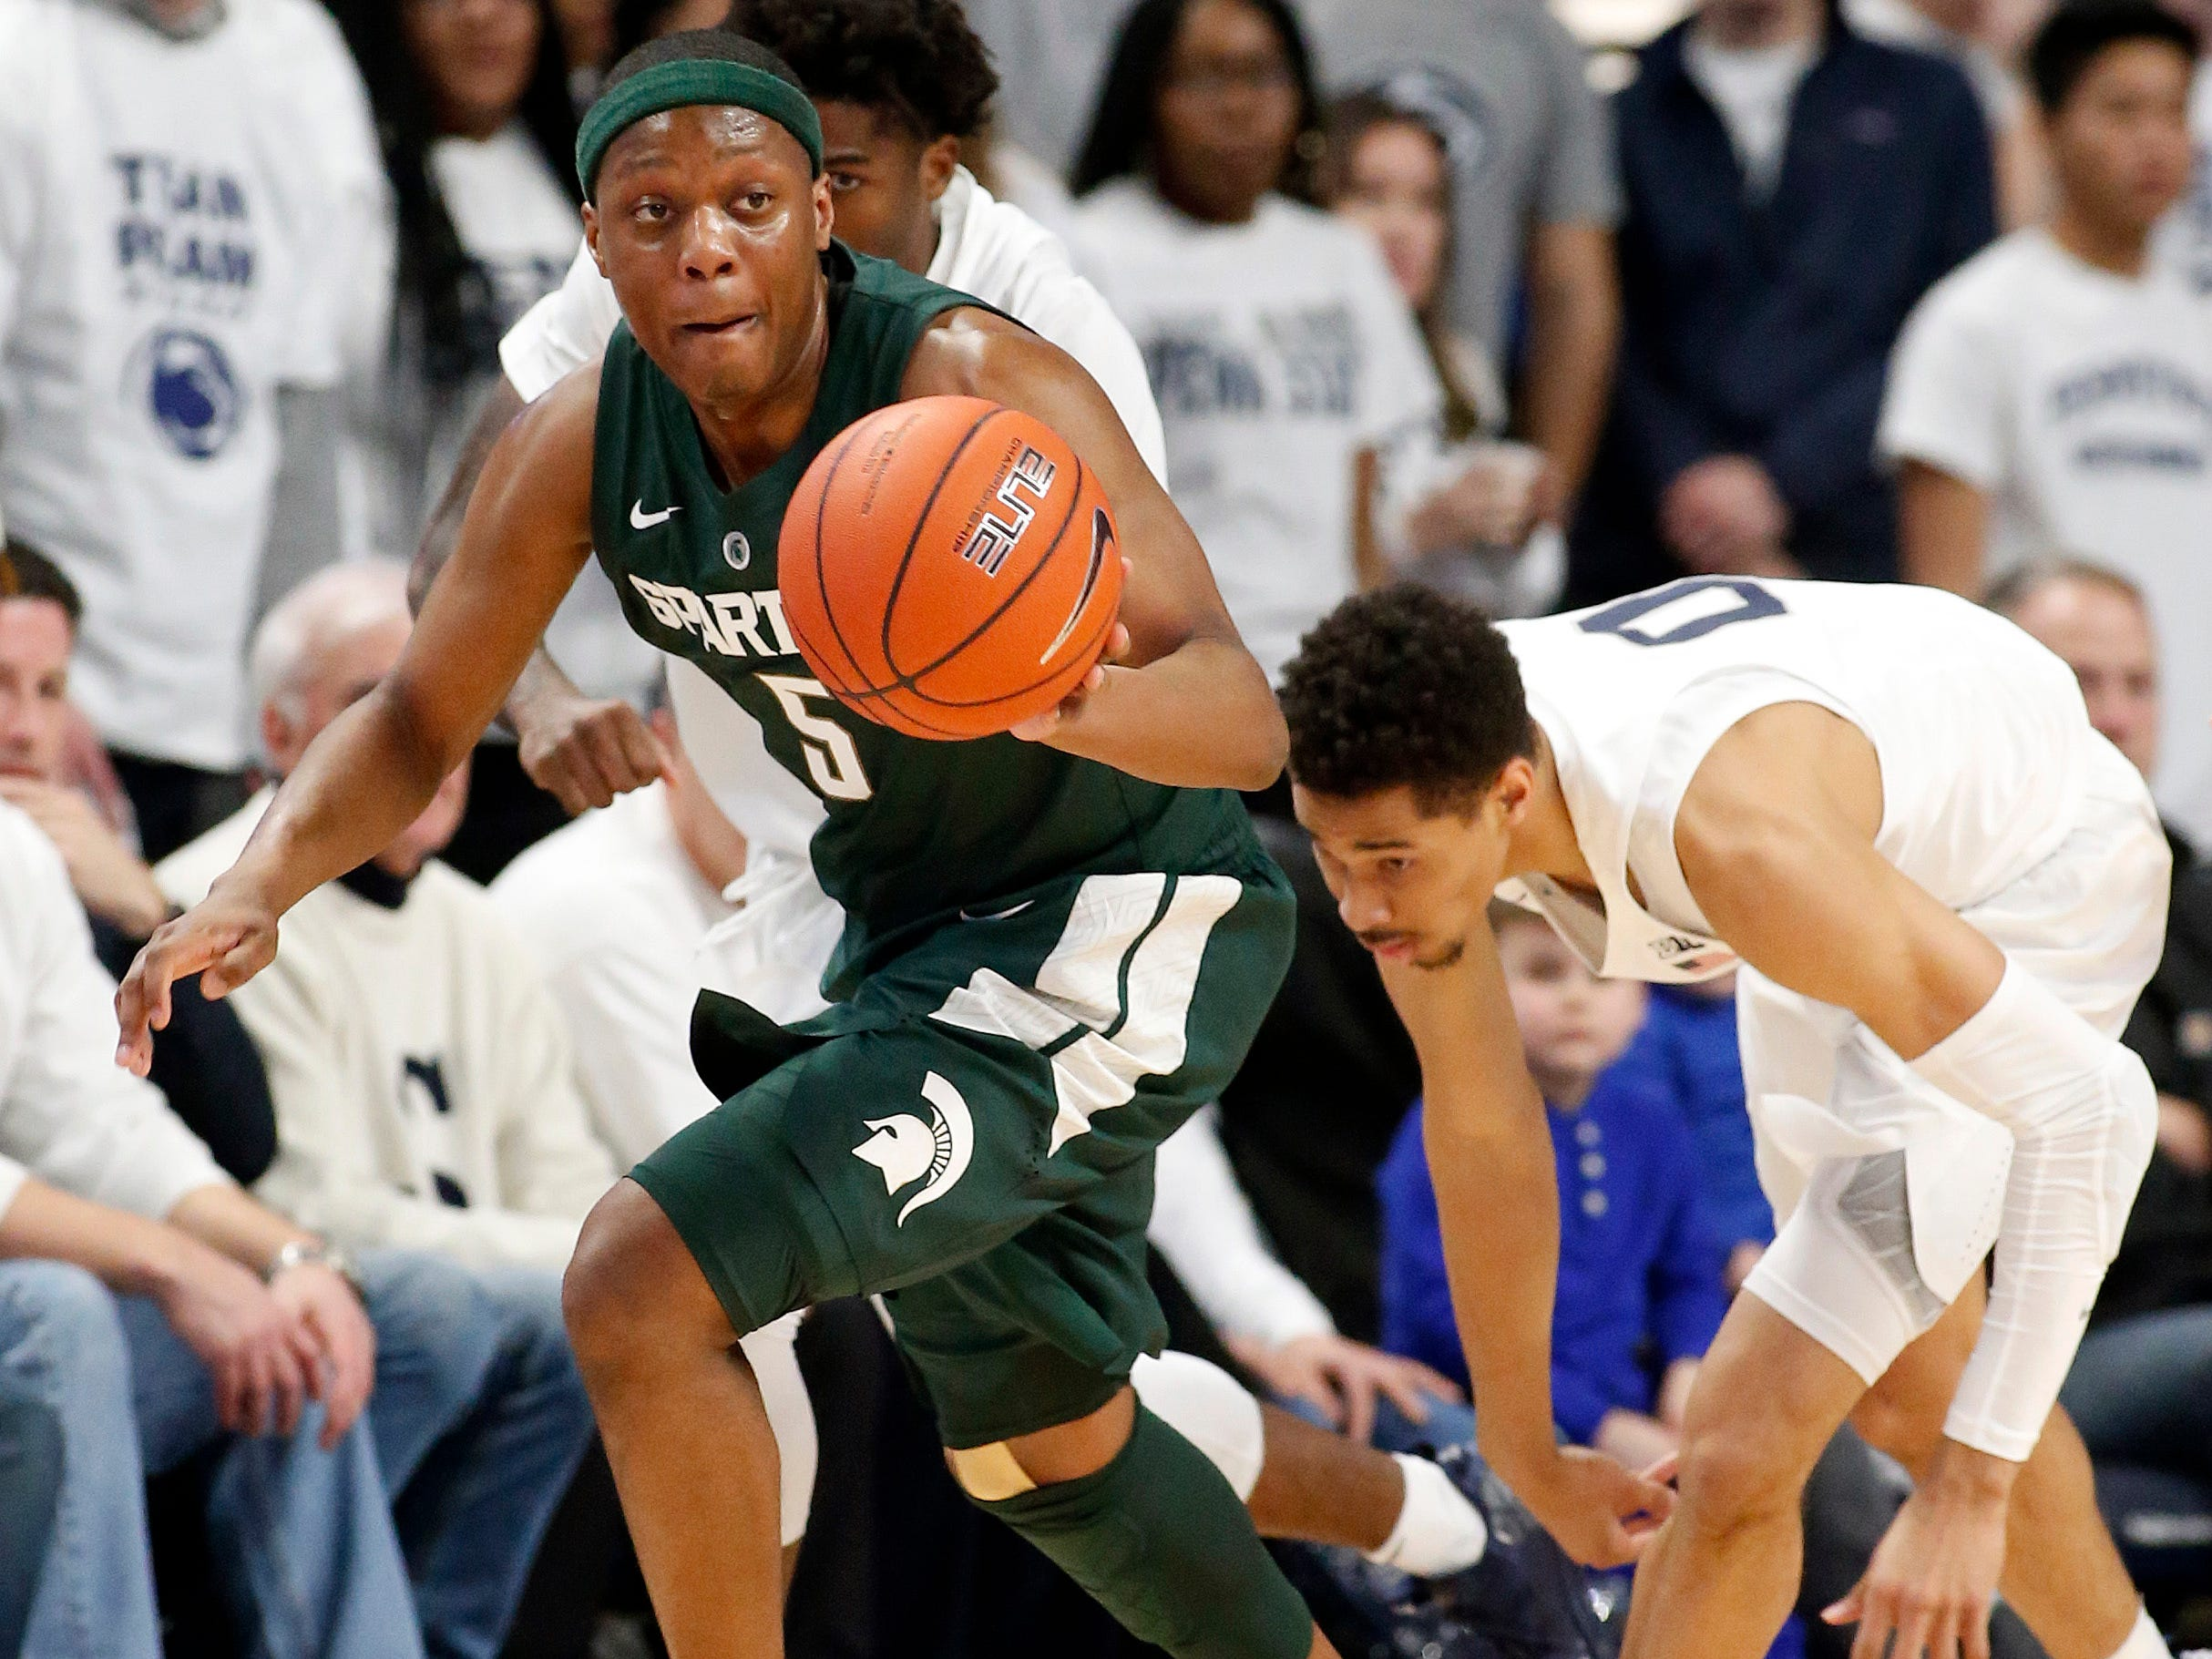 Michigan State's Cassius Winston (5) takes off with the ball after a steal against Penn State's Myreon Jones (0) during first half action.